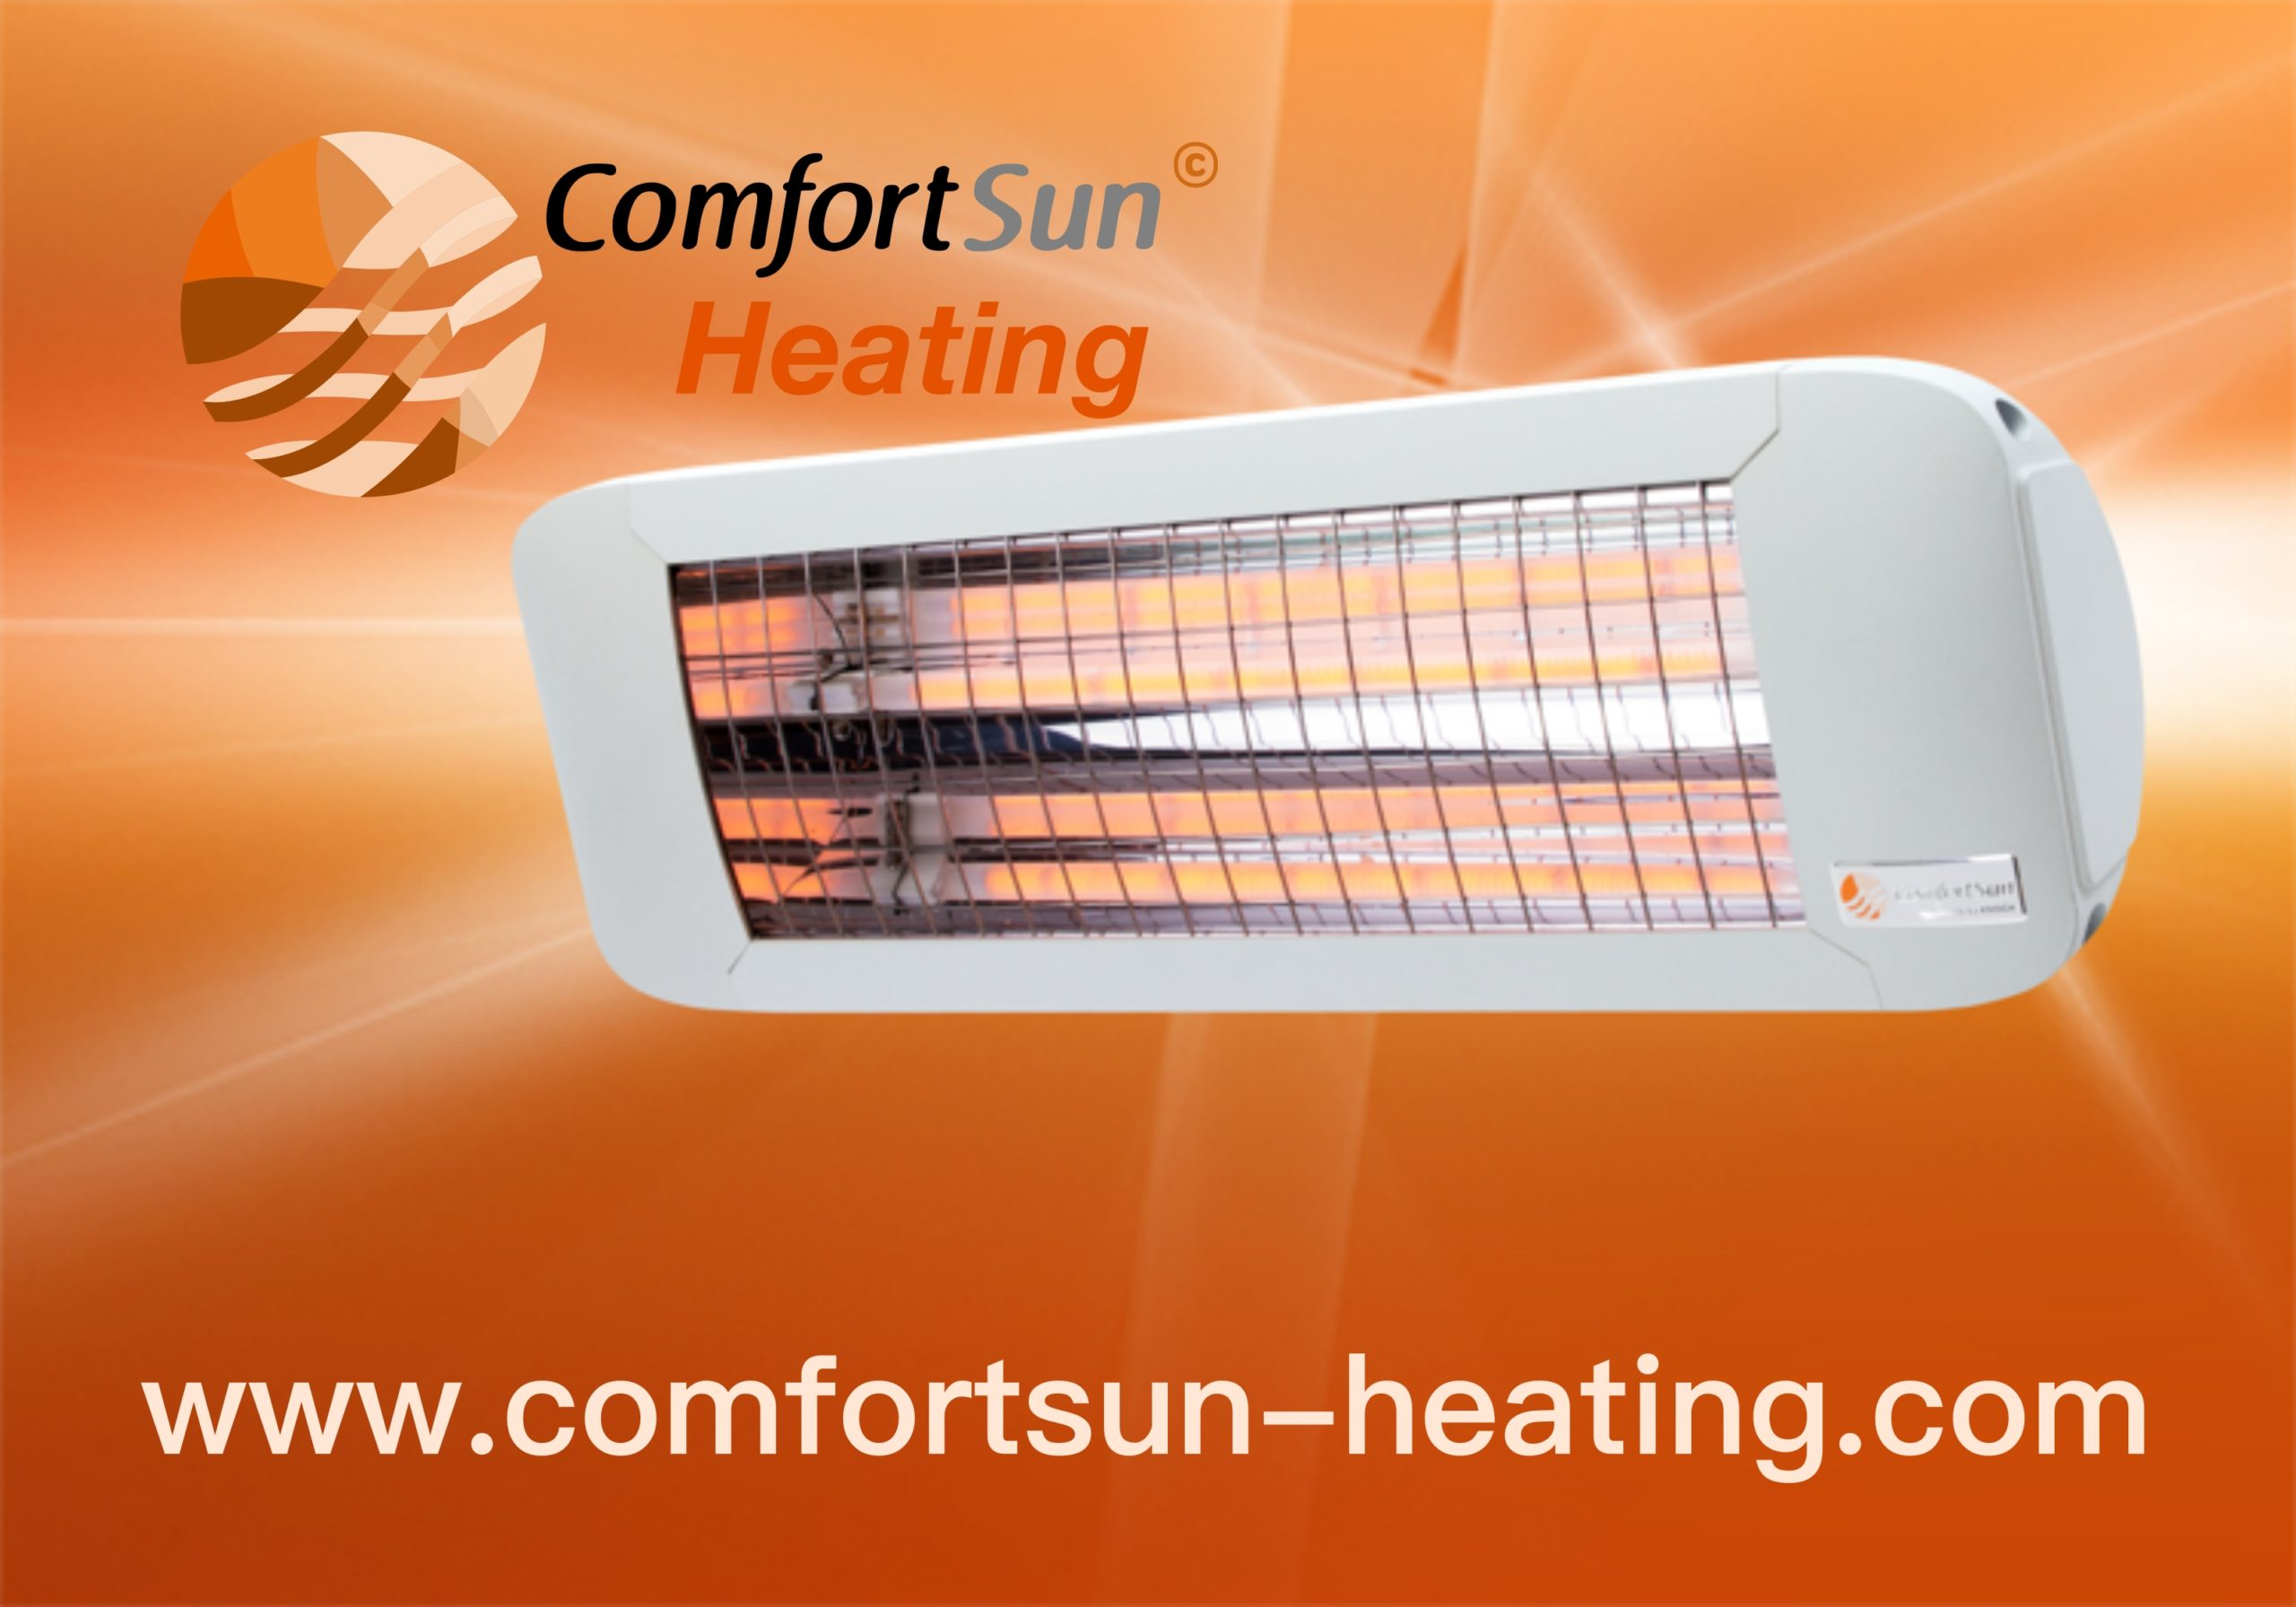 https://www.comfortSun-heating.com